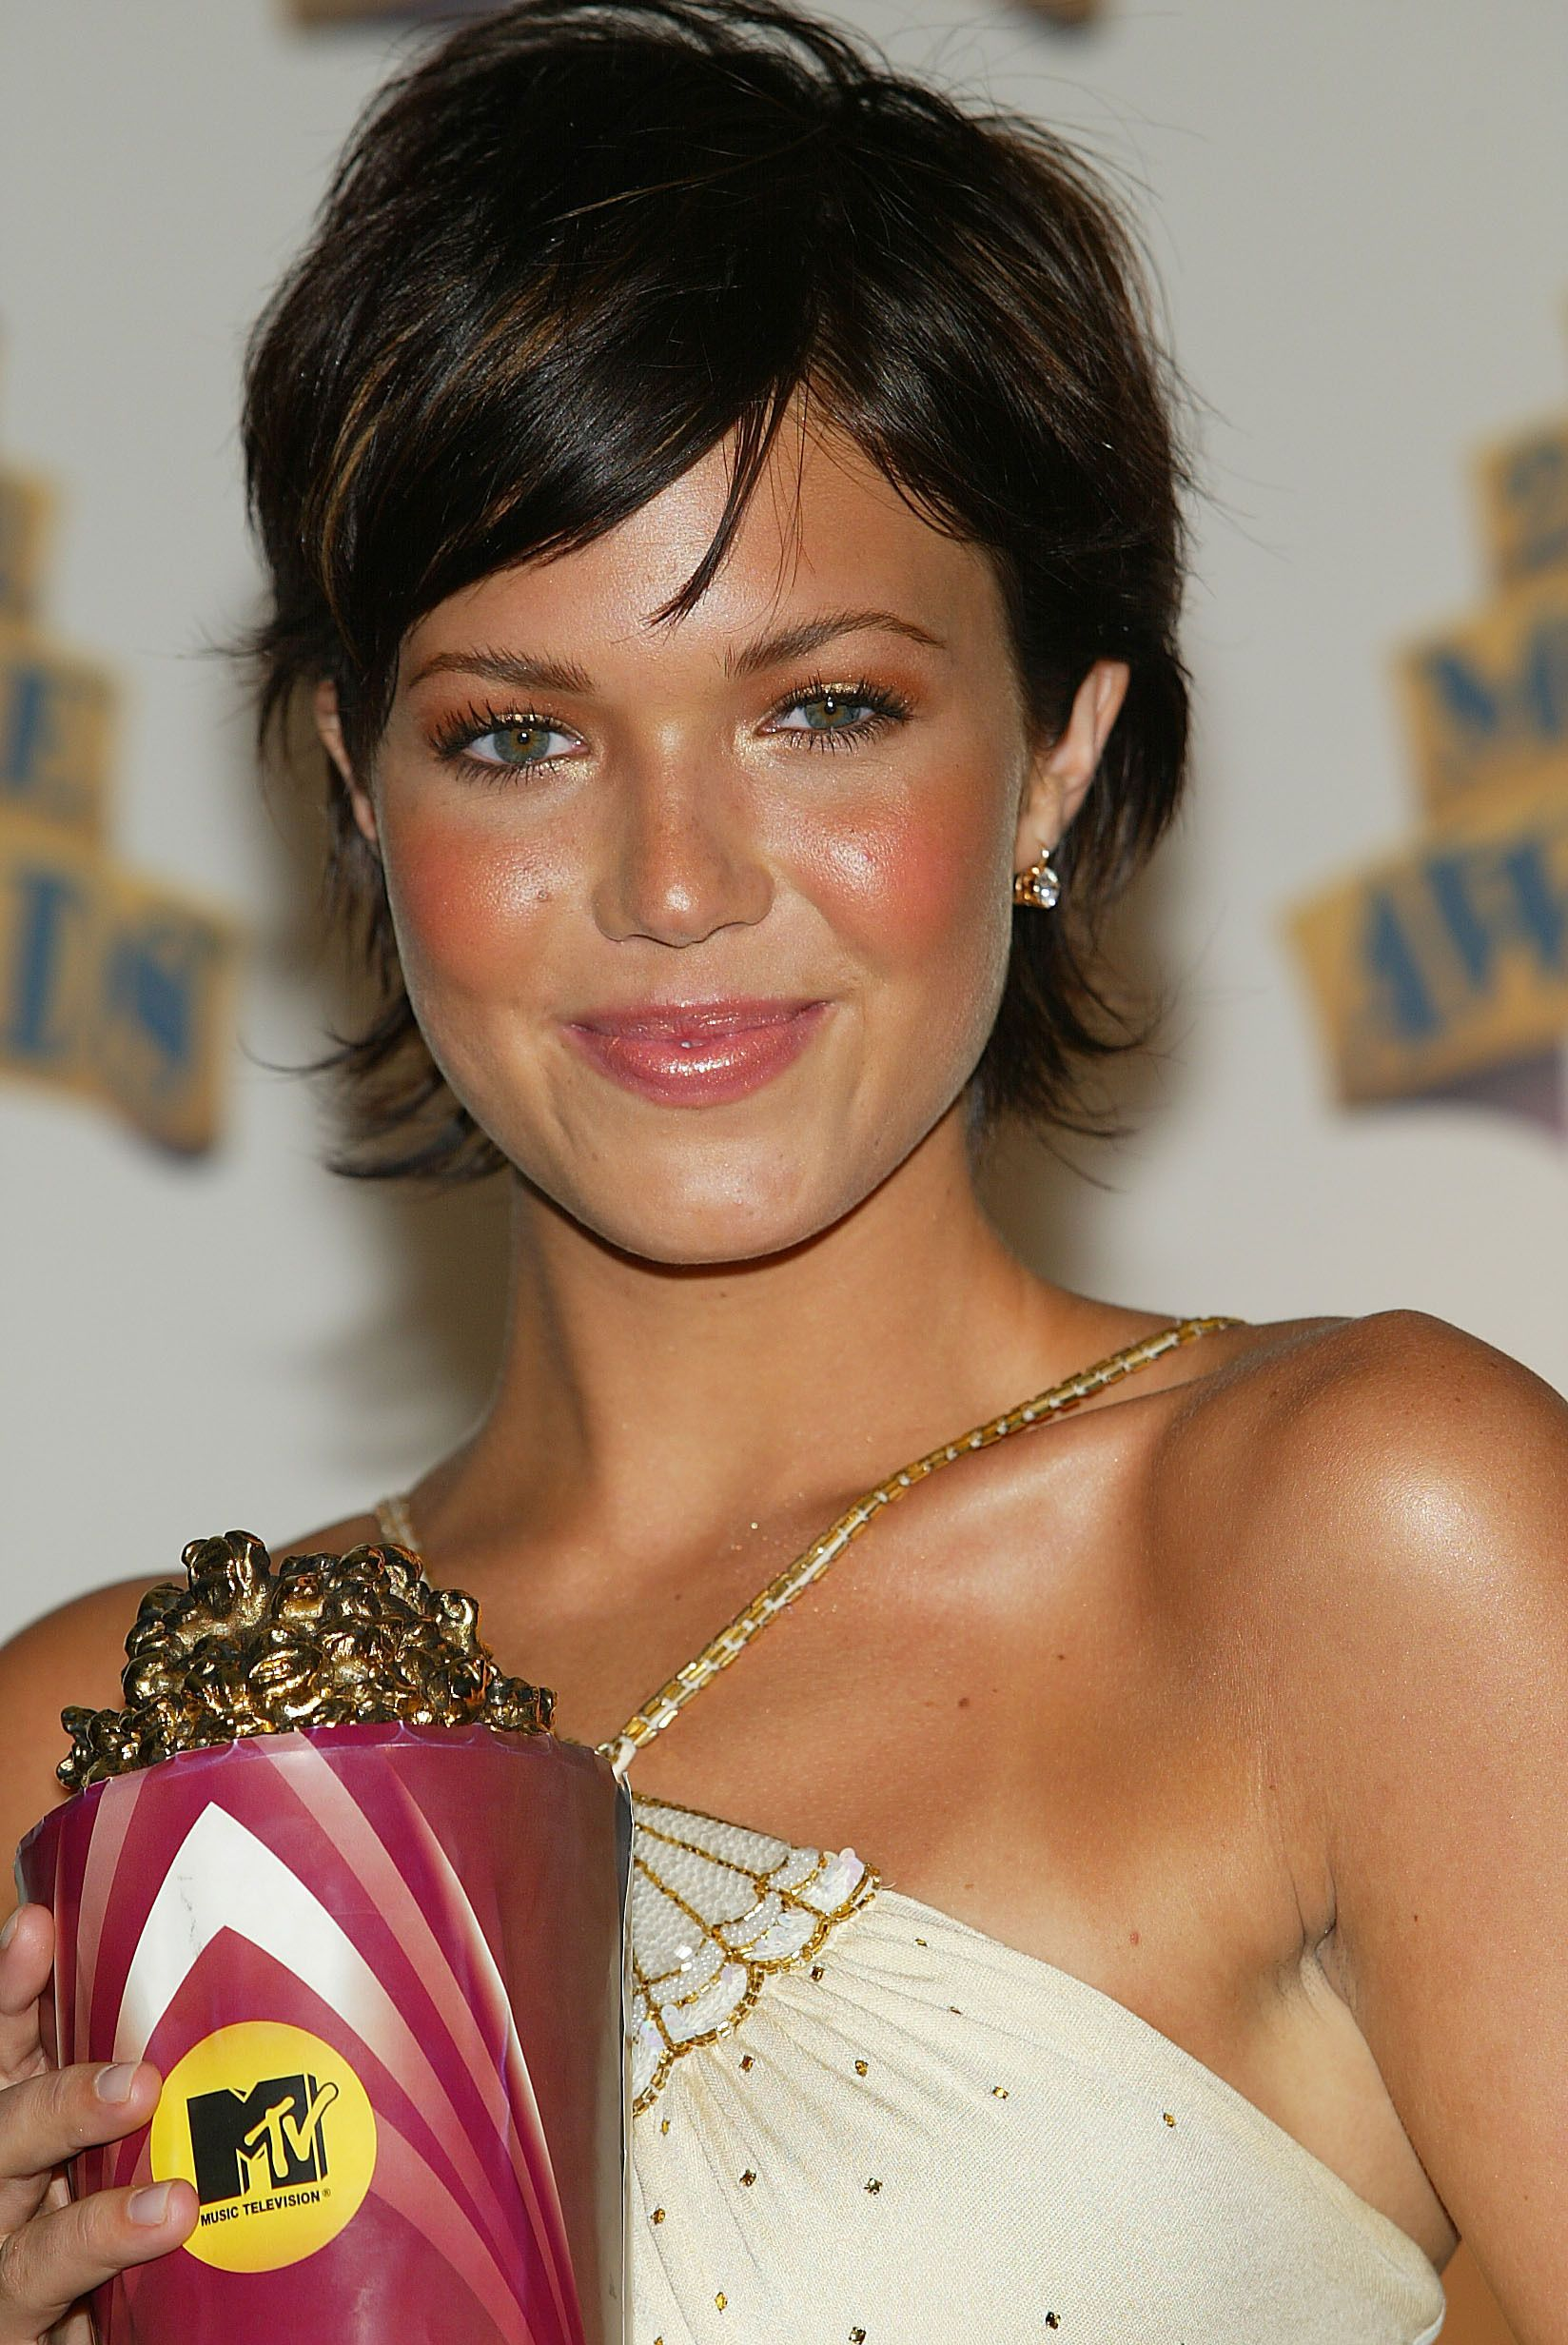 pin by ashley smith on bring on the pixie | mandy moore